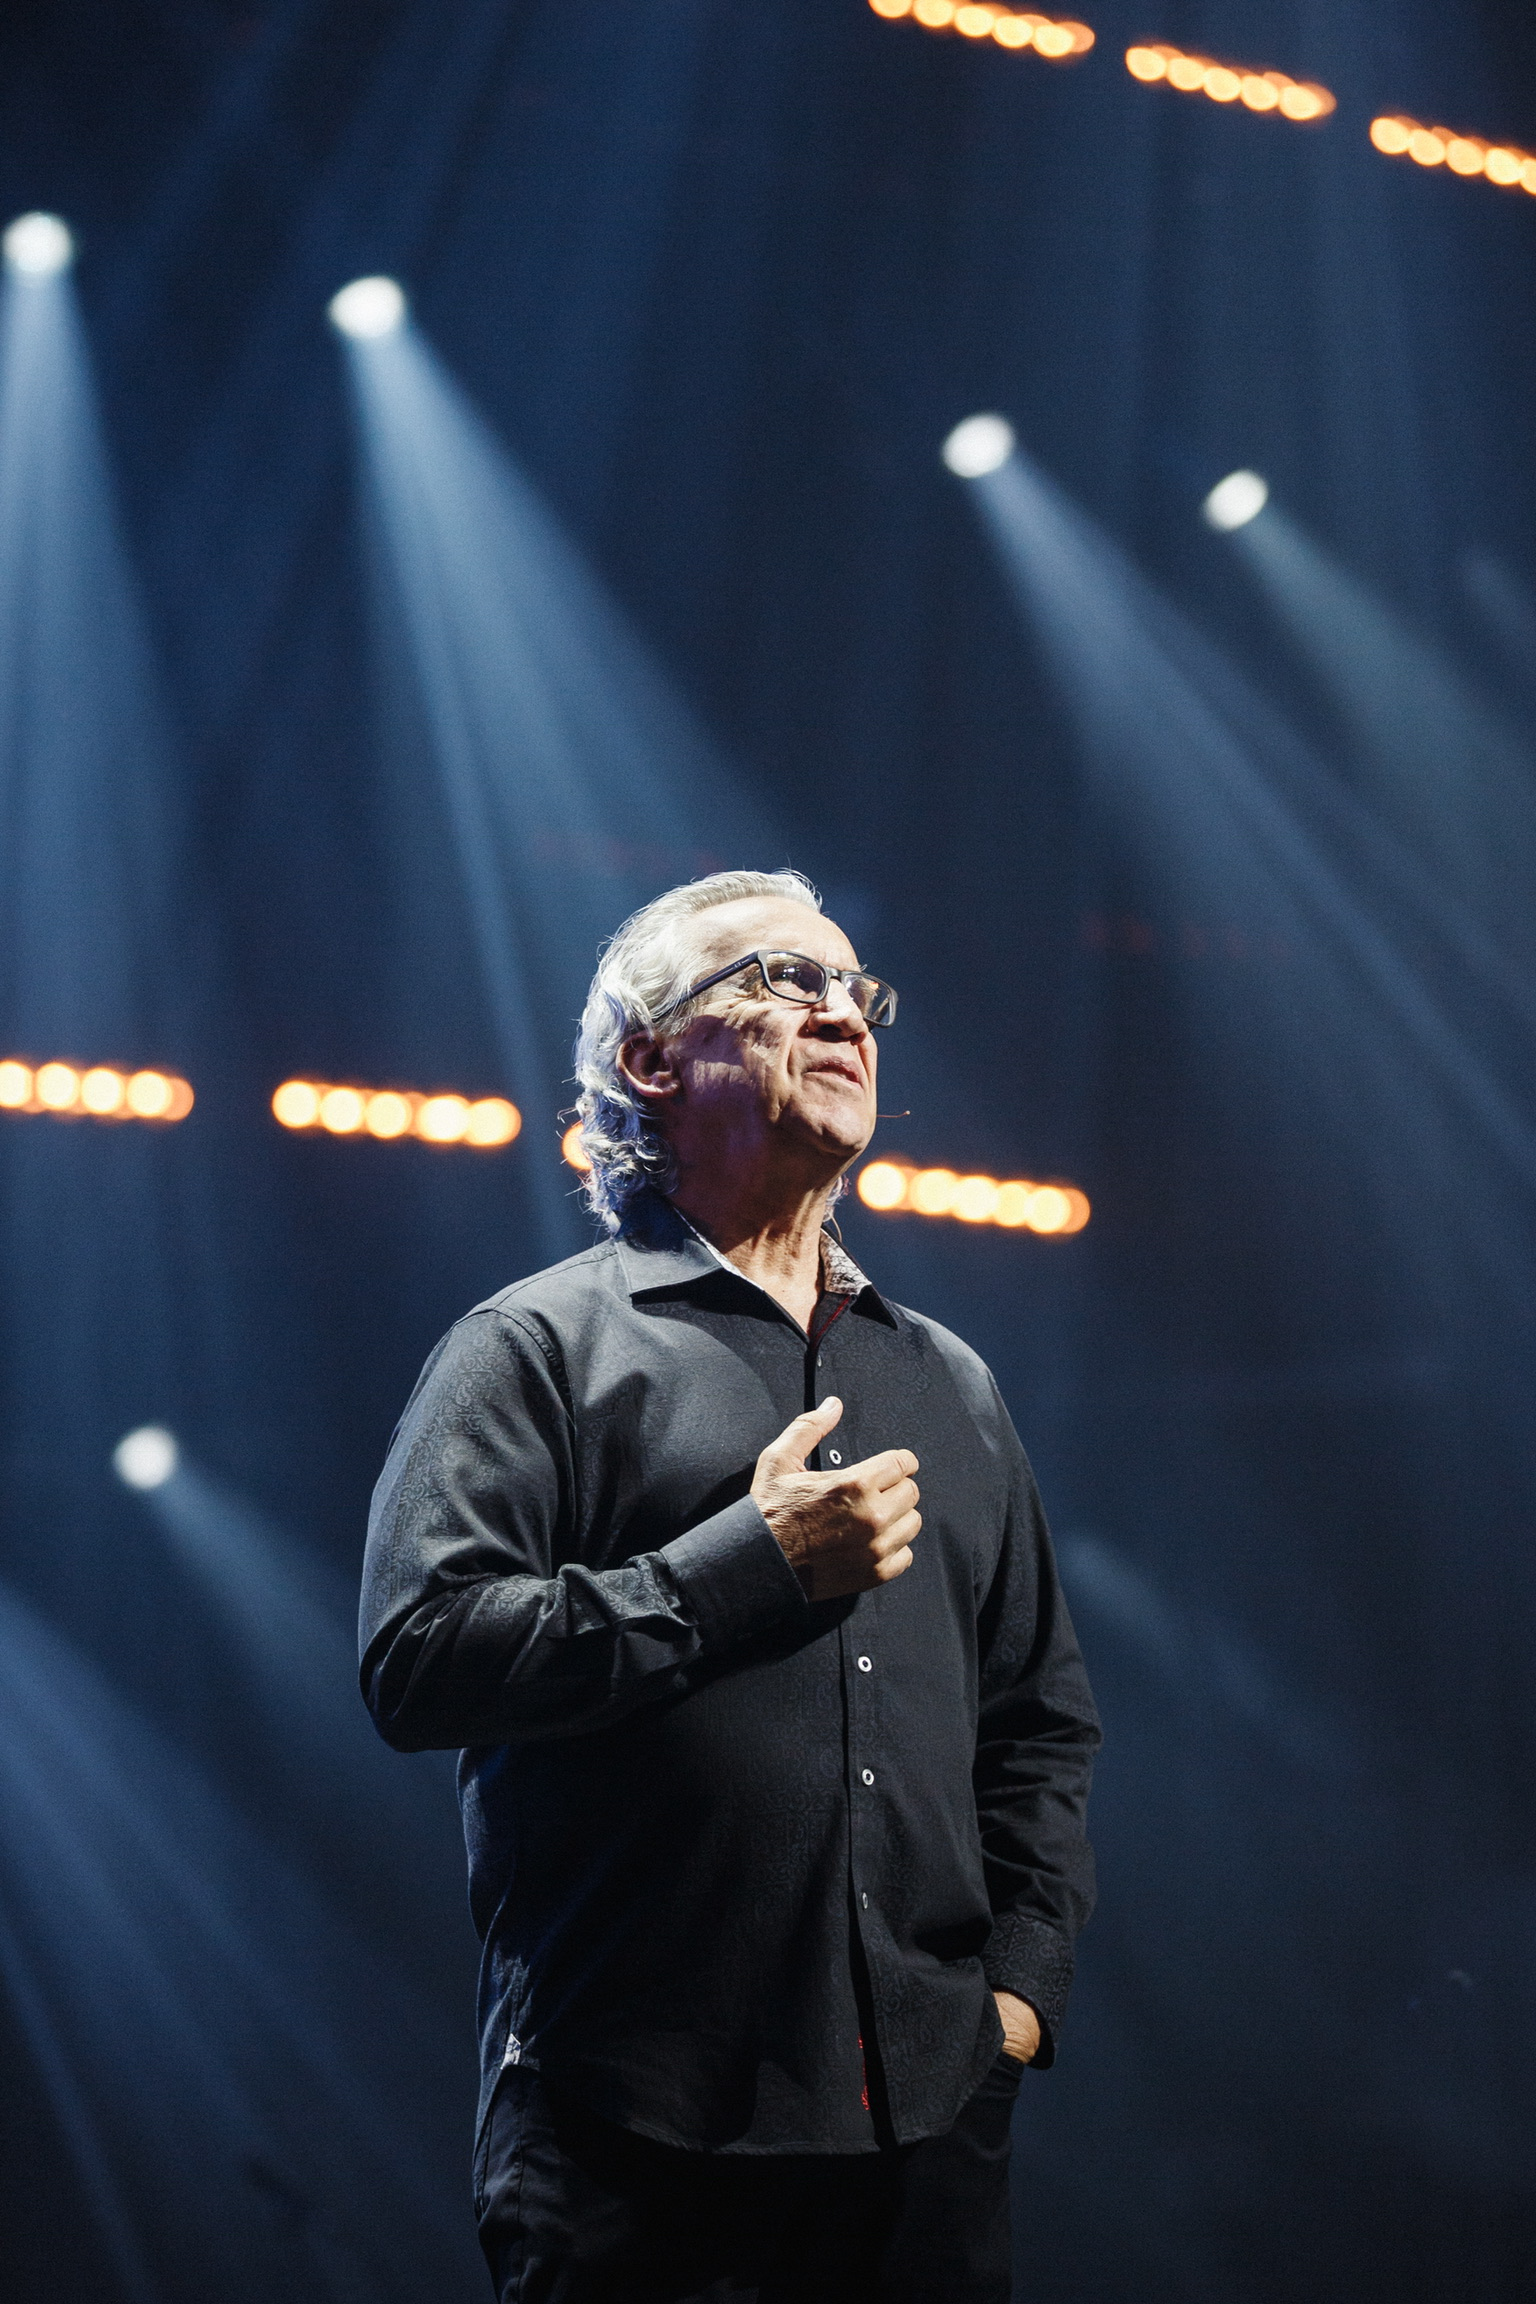 Bill Johnson preaching on stage.